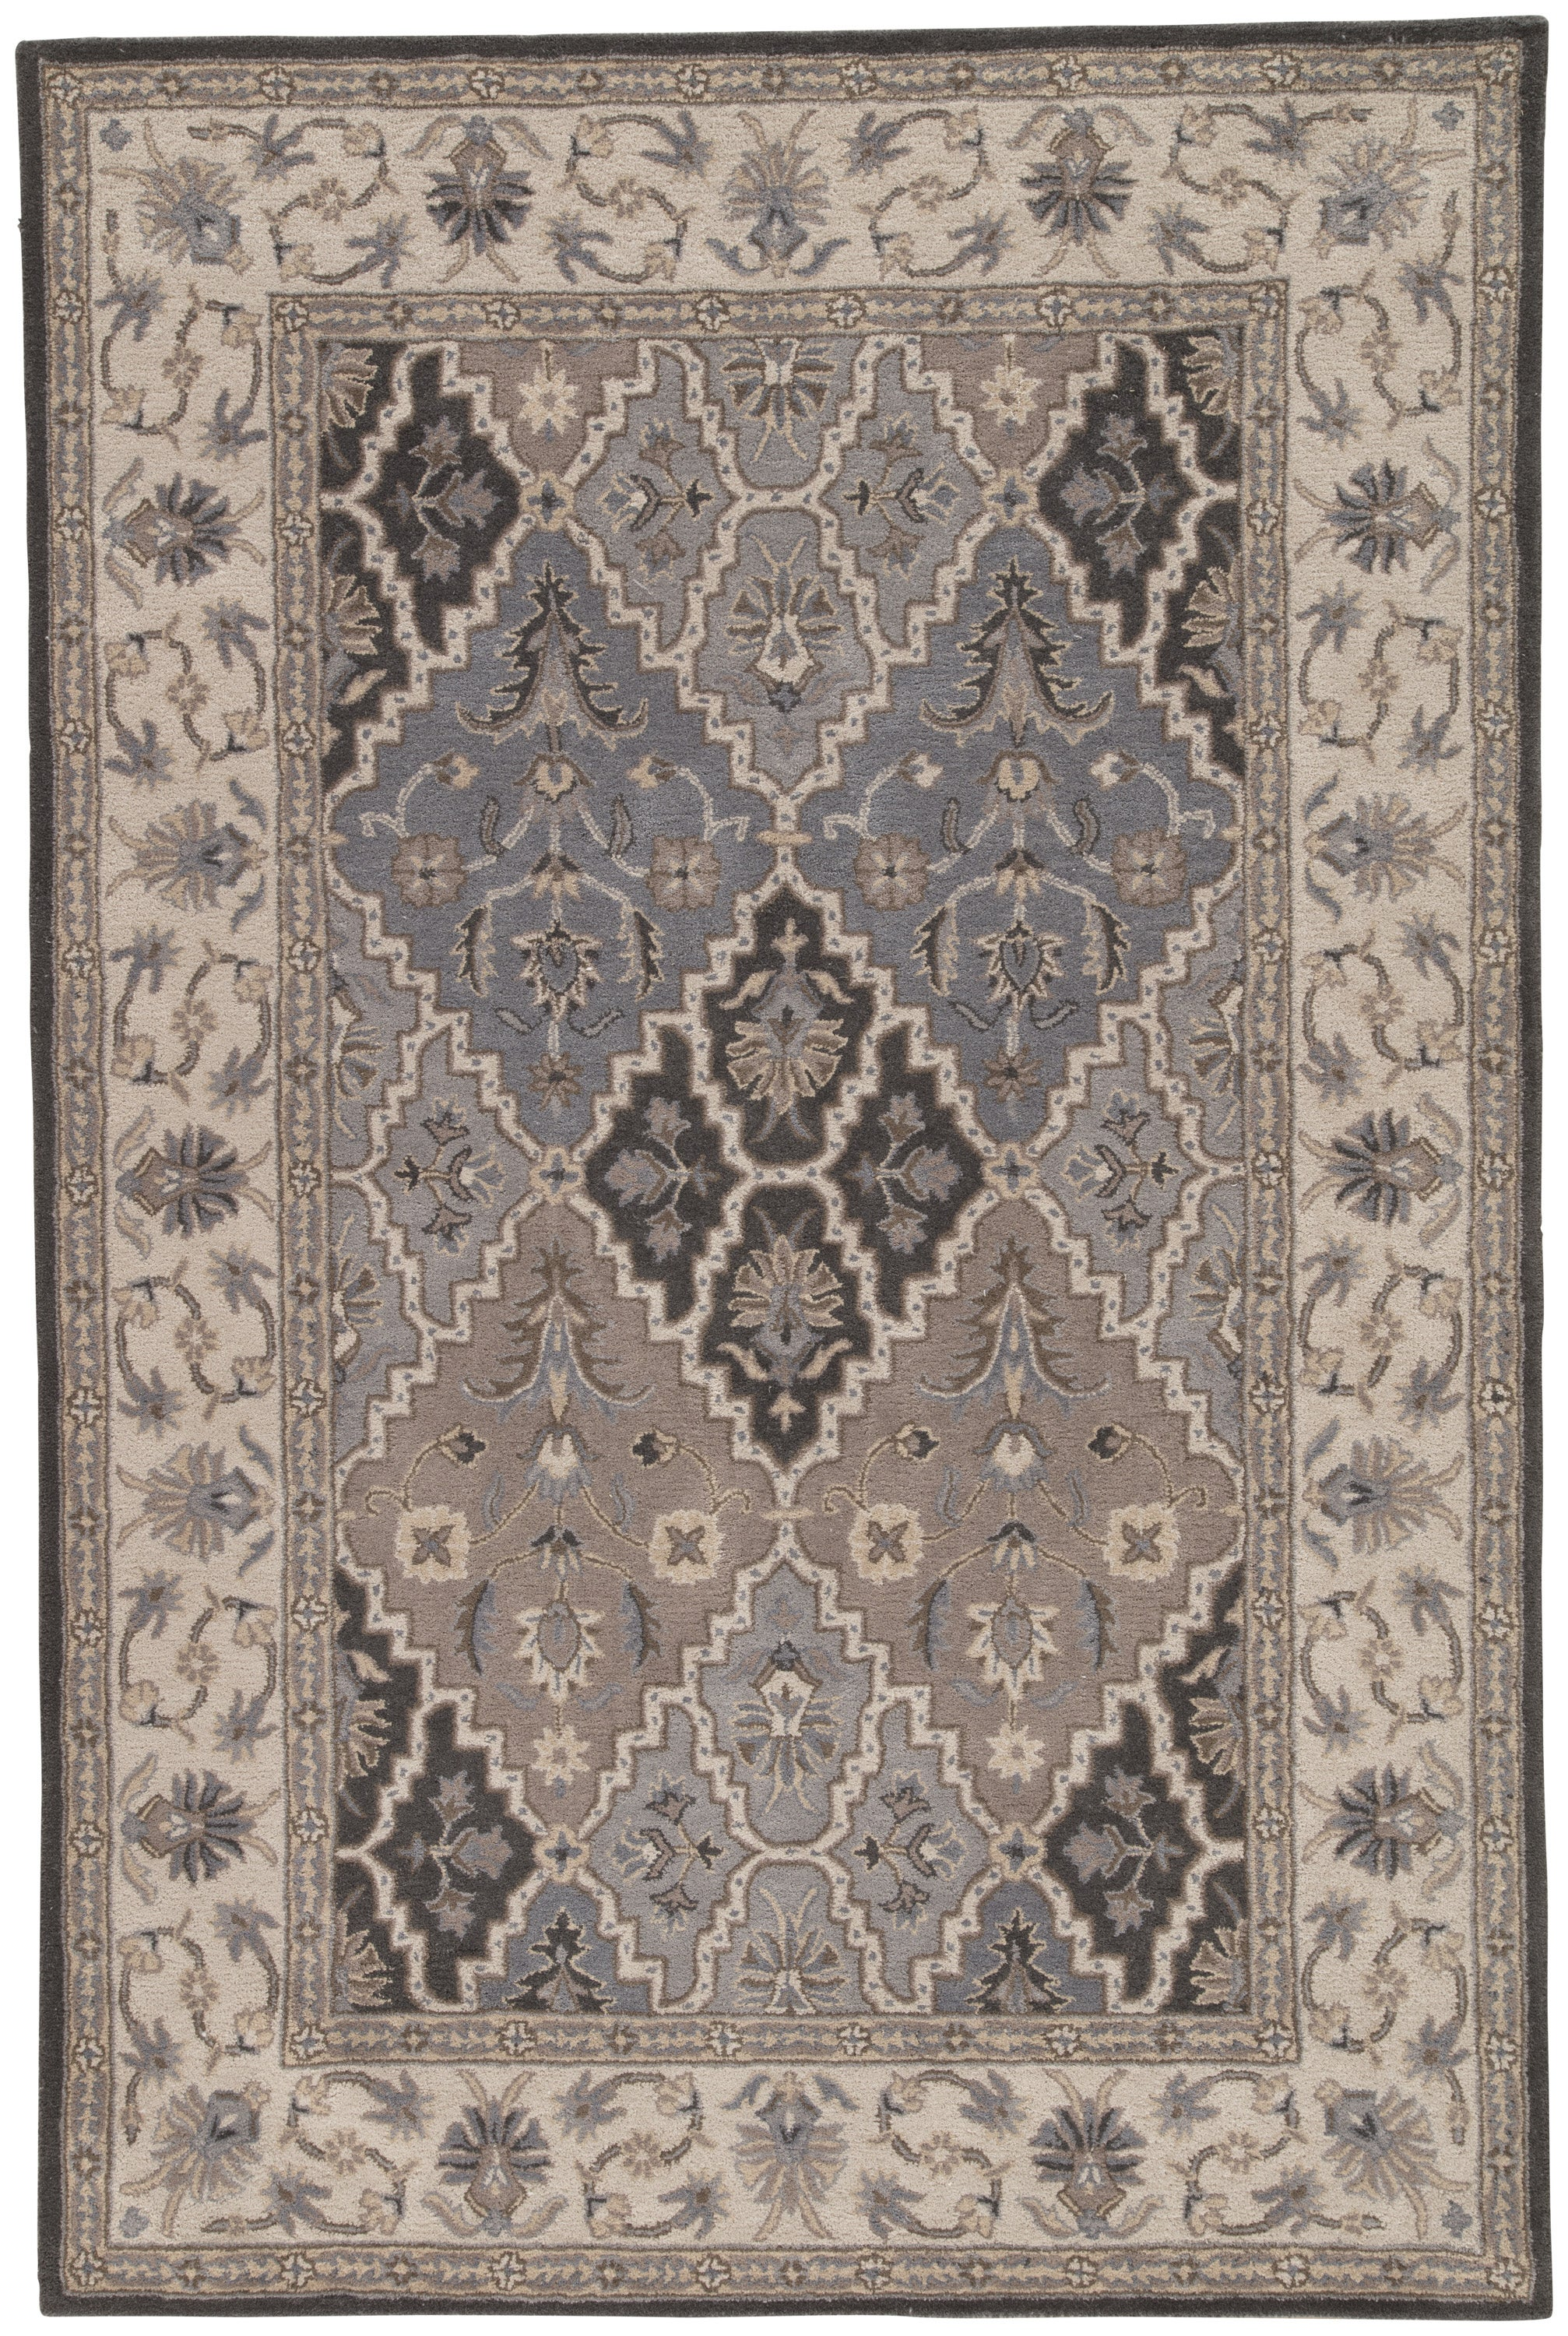 Rectangle Gray Medallion Hand Tufted Wool Traditional & Oriental recommended for Bedroom, Bathroom, Dining Room, Office, Hallway, Living Room